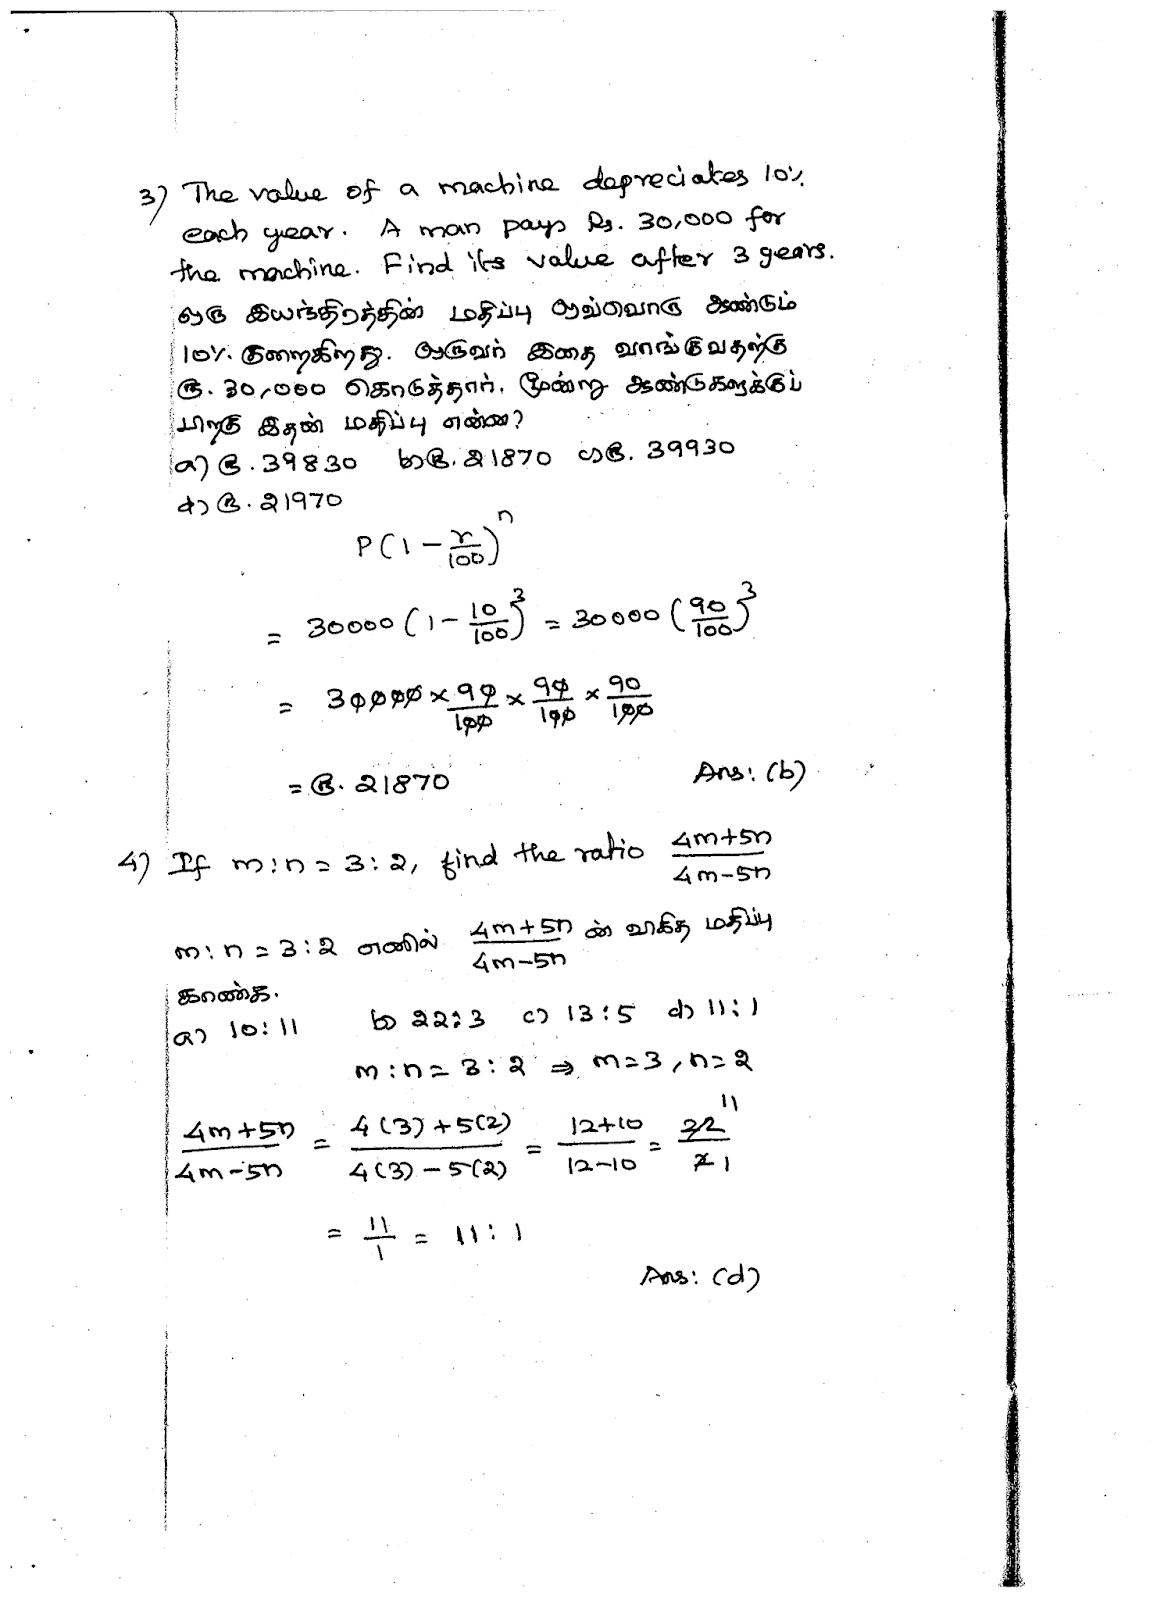 TNPSC – 2020 - Assistant Section Officer (Translation) in Tamil Development and Information Department in Tamil Nadu Secretariat Service EXAM - EXAM DATE: 11.01.2020. PAGE - 02/13